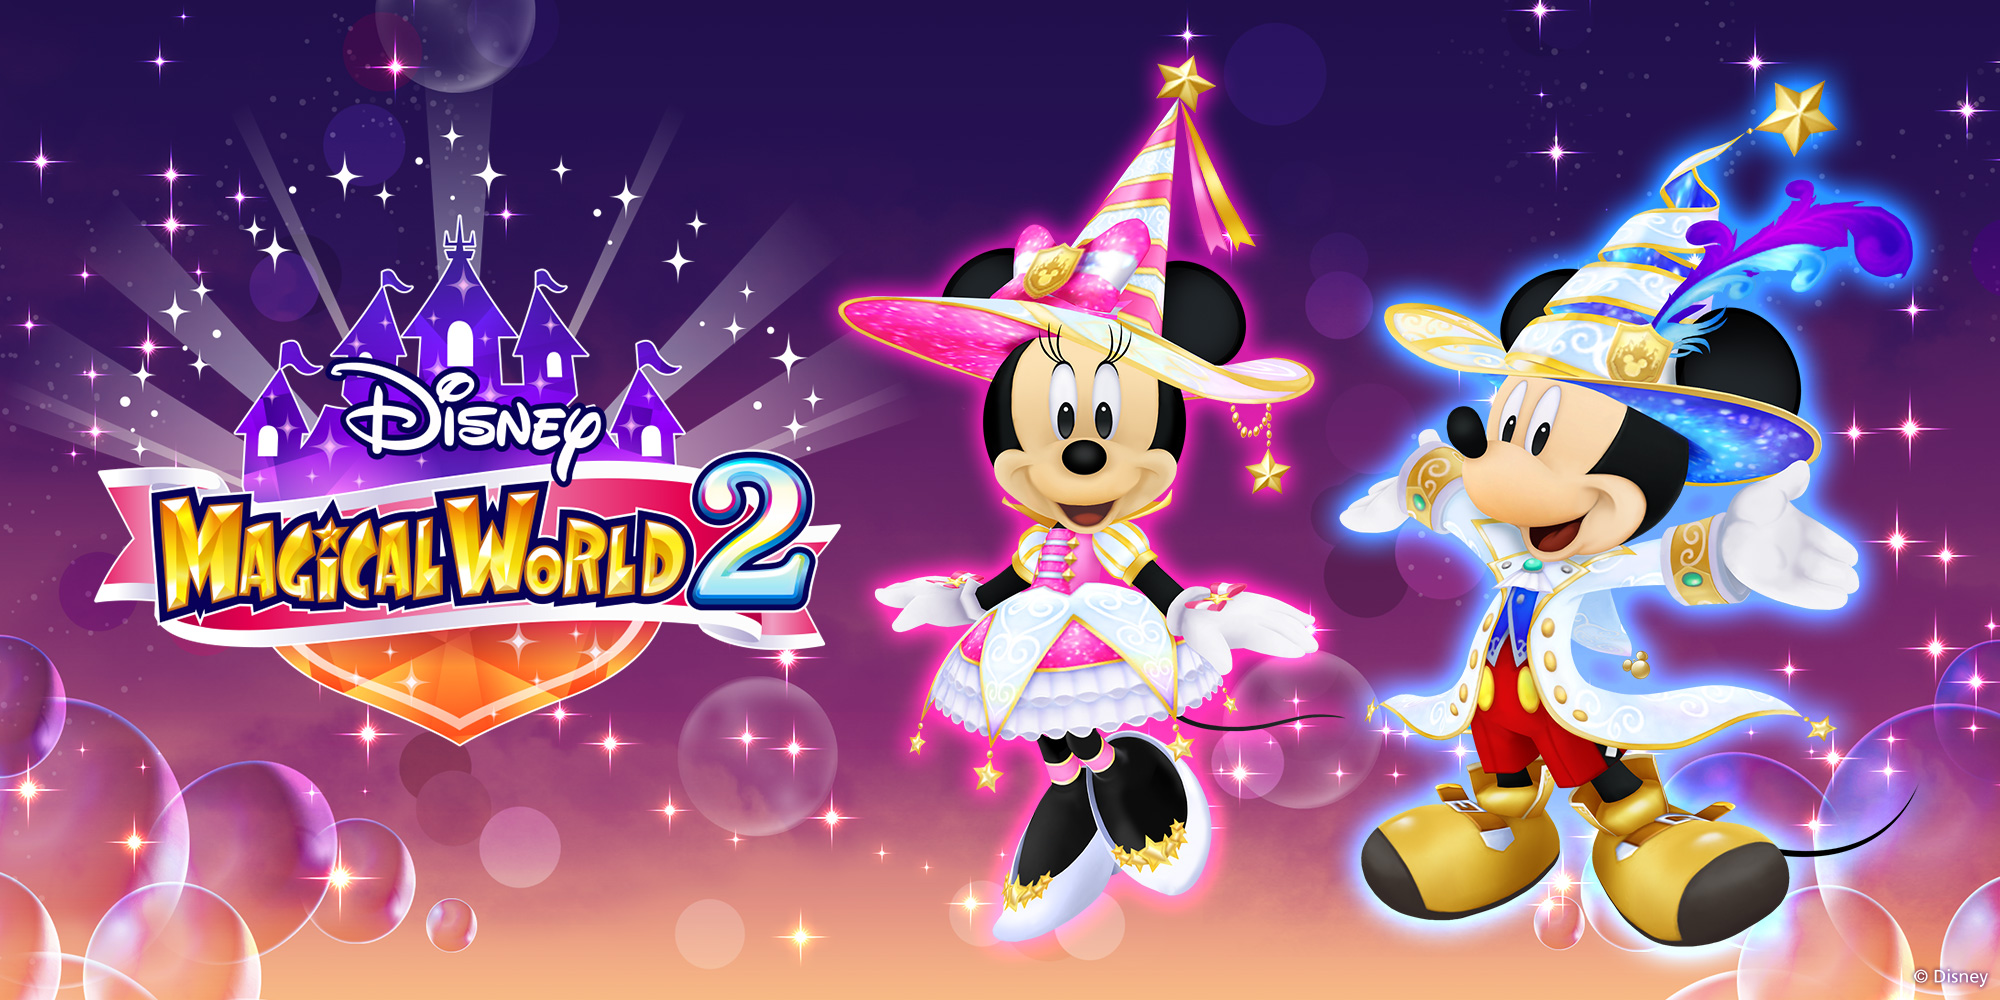 Disney Magical World 2 is coming to Nintendo 3DS family systems on 14th October 2016